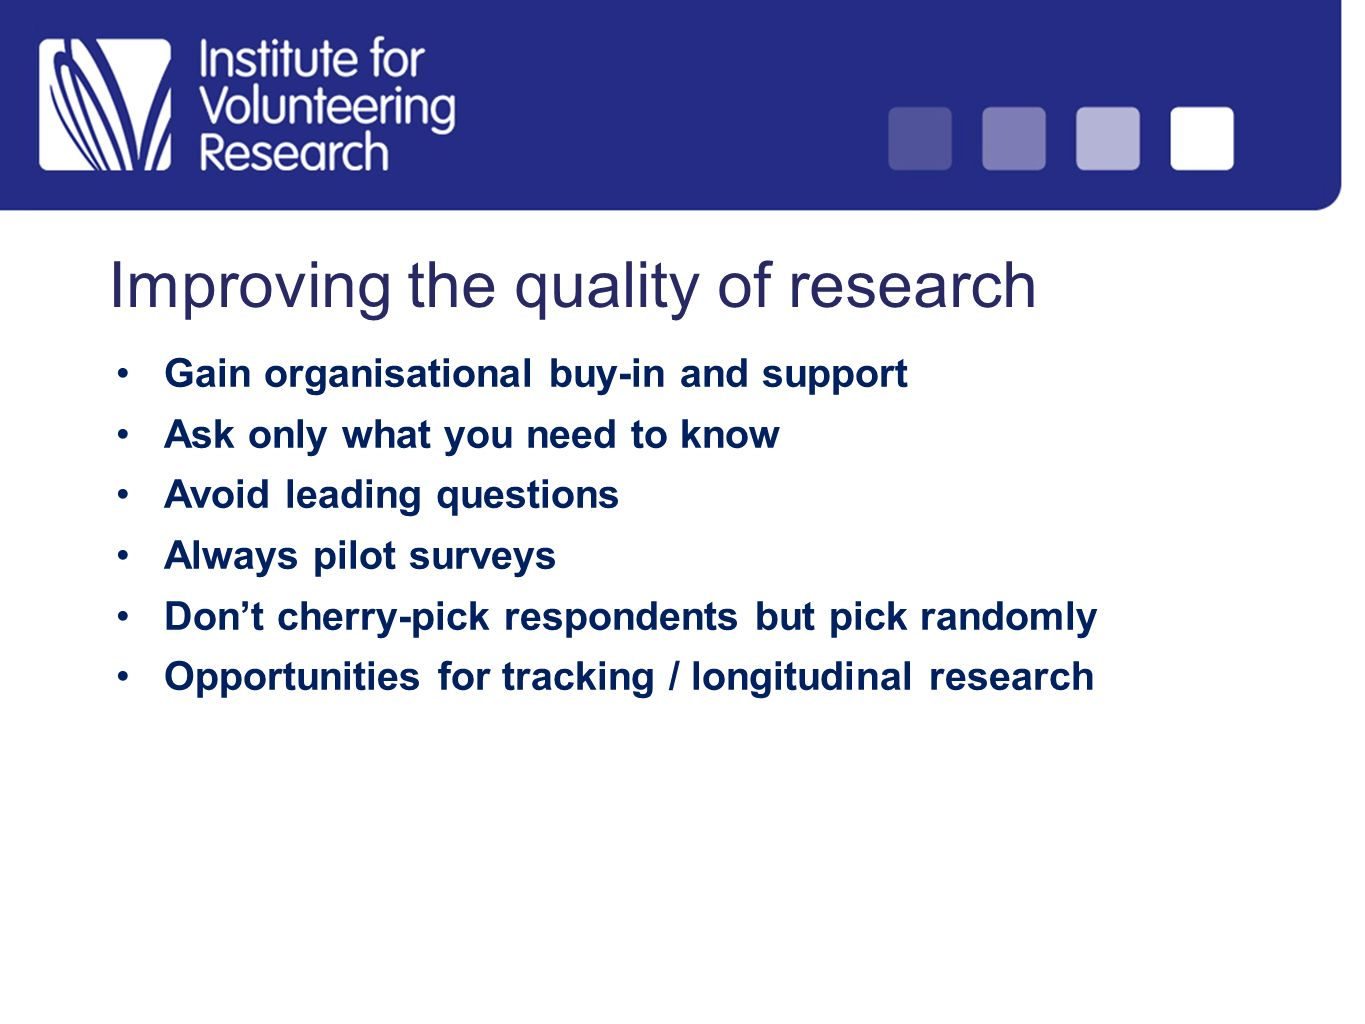 Improving the quality of research Gain organisational buy-in and support Ask only what you need to know Avoid leading questions Always pilot surveys Dont cherry-pick respondents but pick randomly Opportunities for tracking / longitudinal research